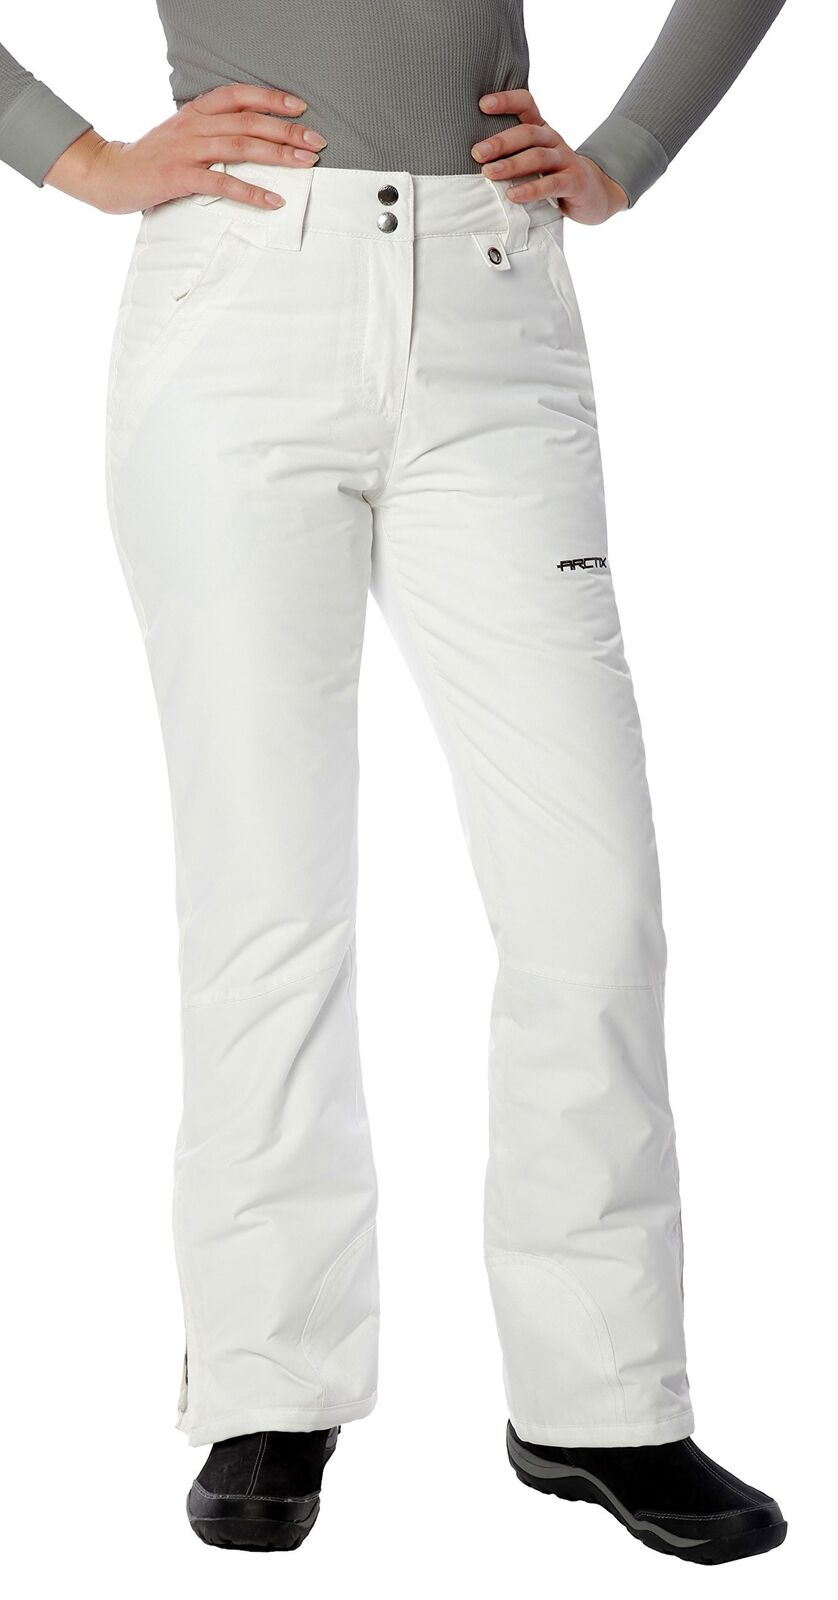 Arctix Women's Insulated Snow Pant  White X-Large Regular  clients first reputation first